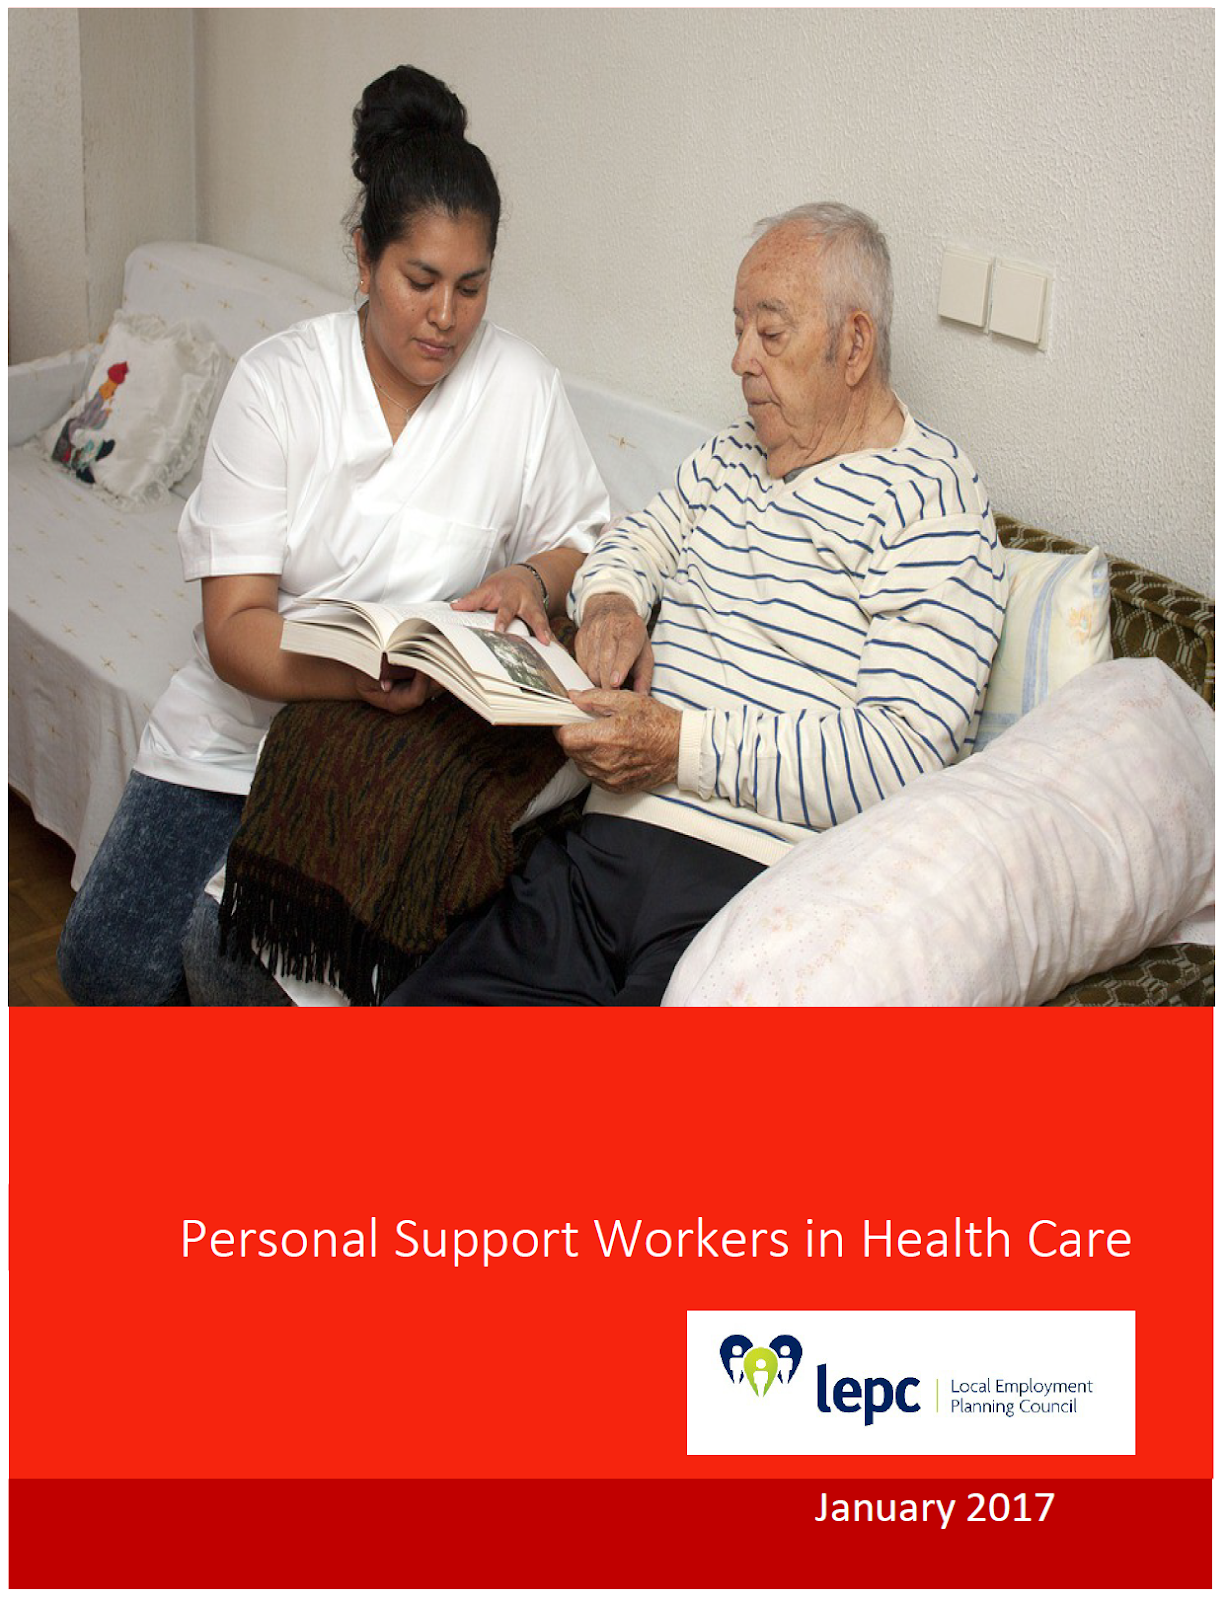 Report on Personal Support Workers in Health Care